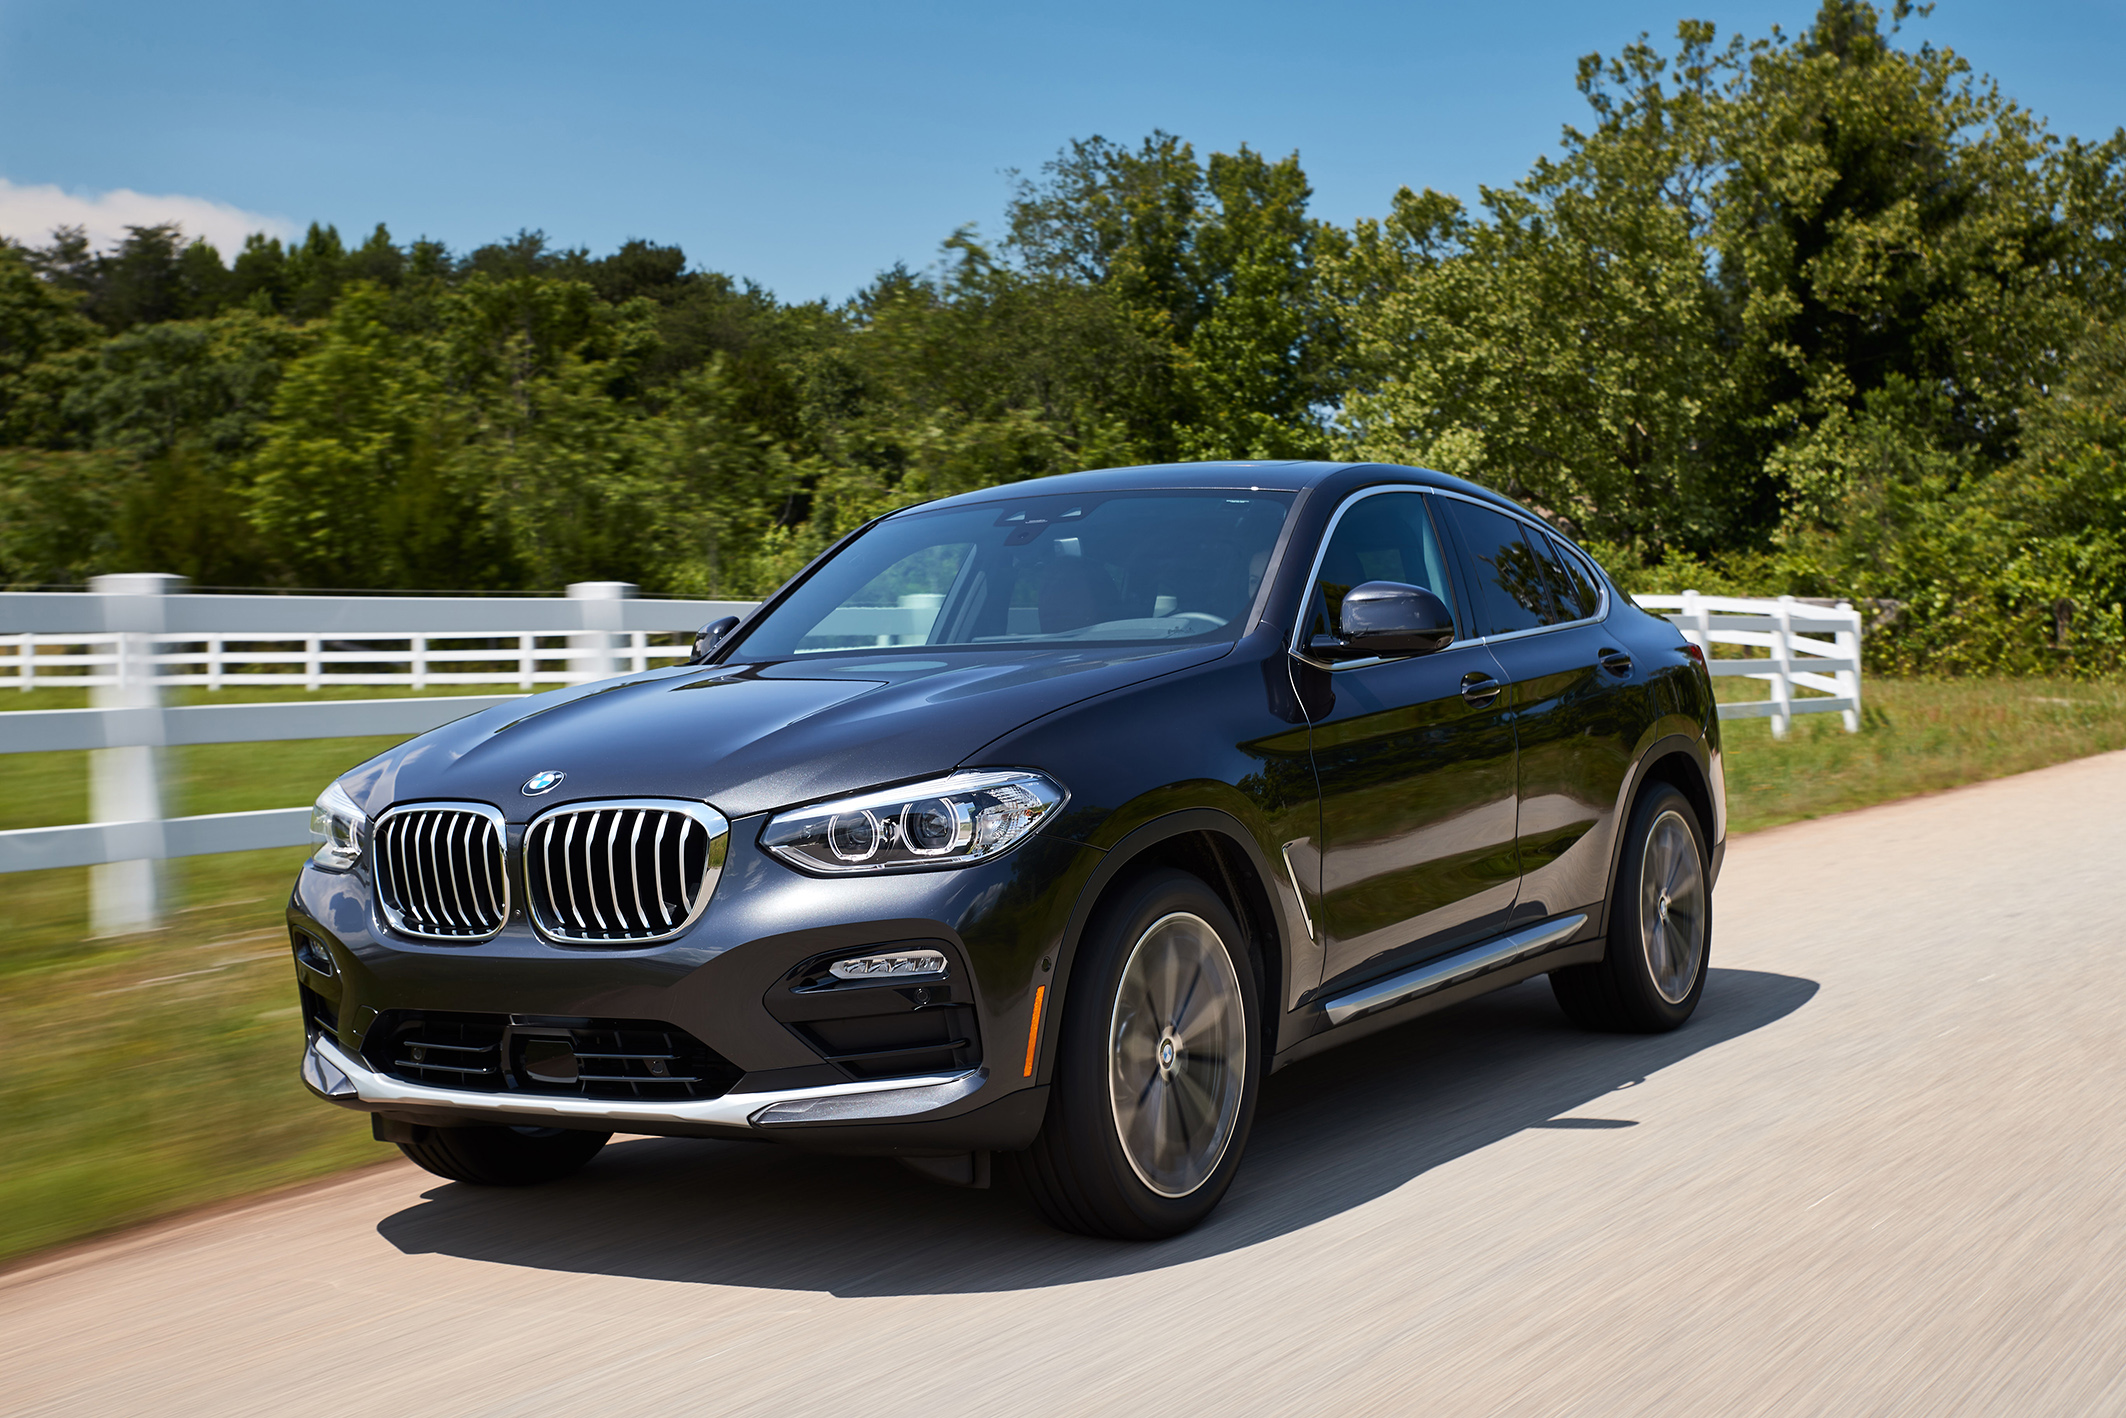 61 The 2019 Bmw X4 Price And Release Date